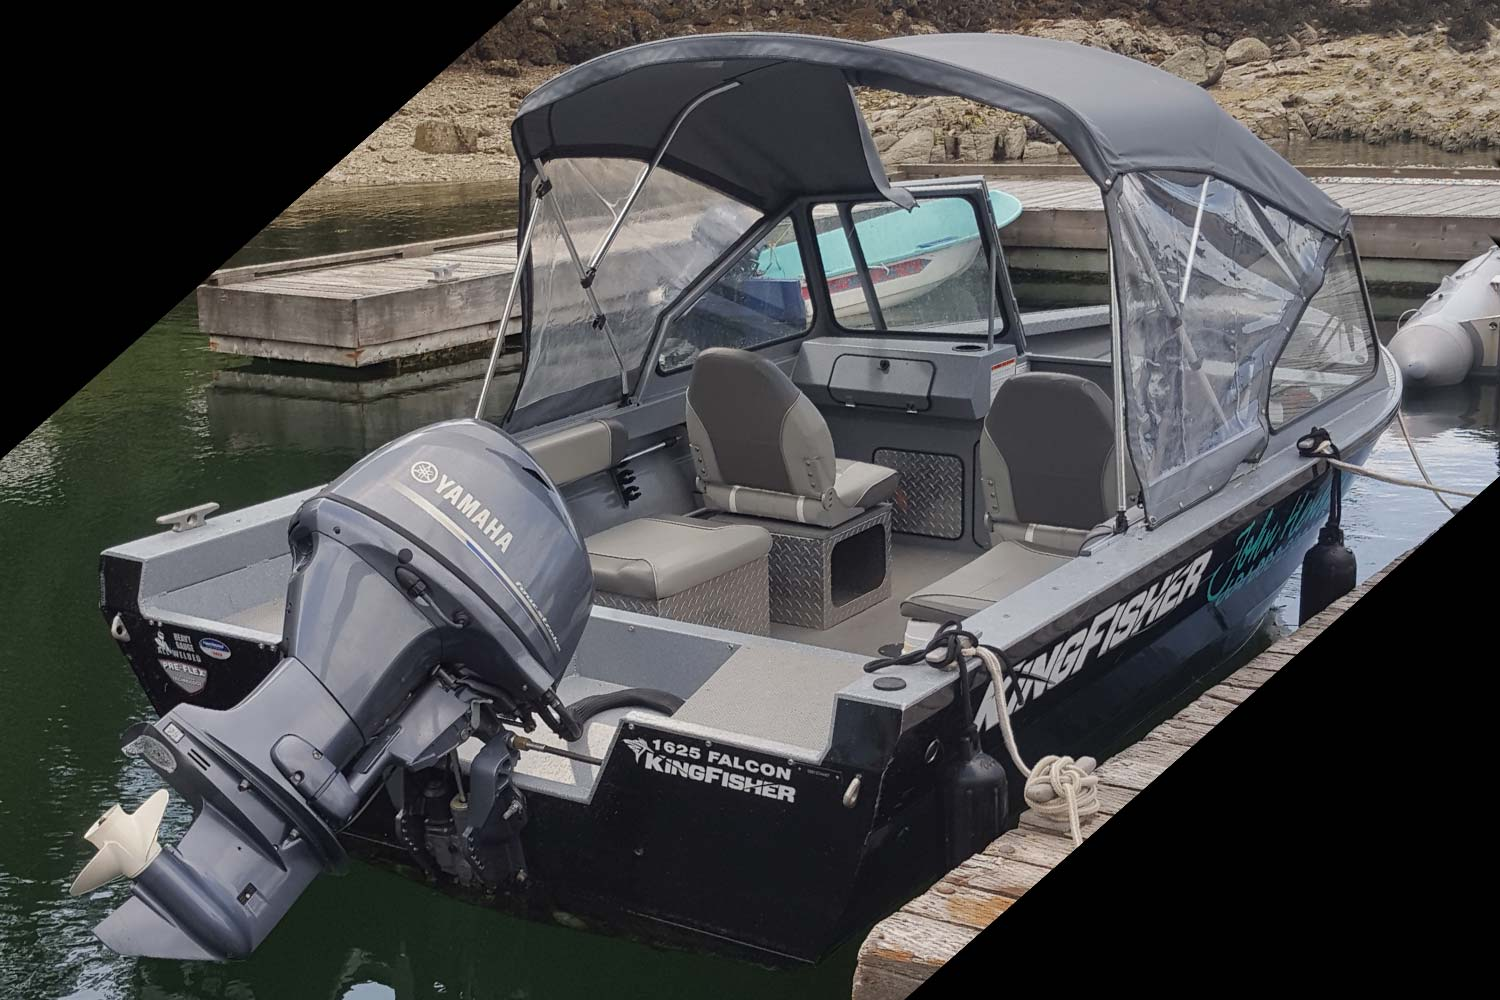 John Henry's powerboat for hire: A 16-foot Kingfisher Falcon powerboat seats 6 people and has a 75HP engine.